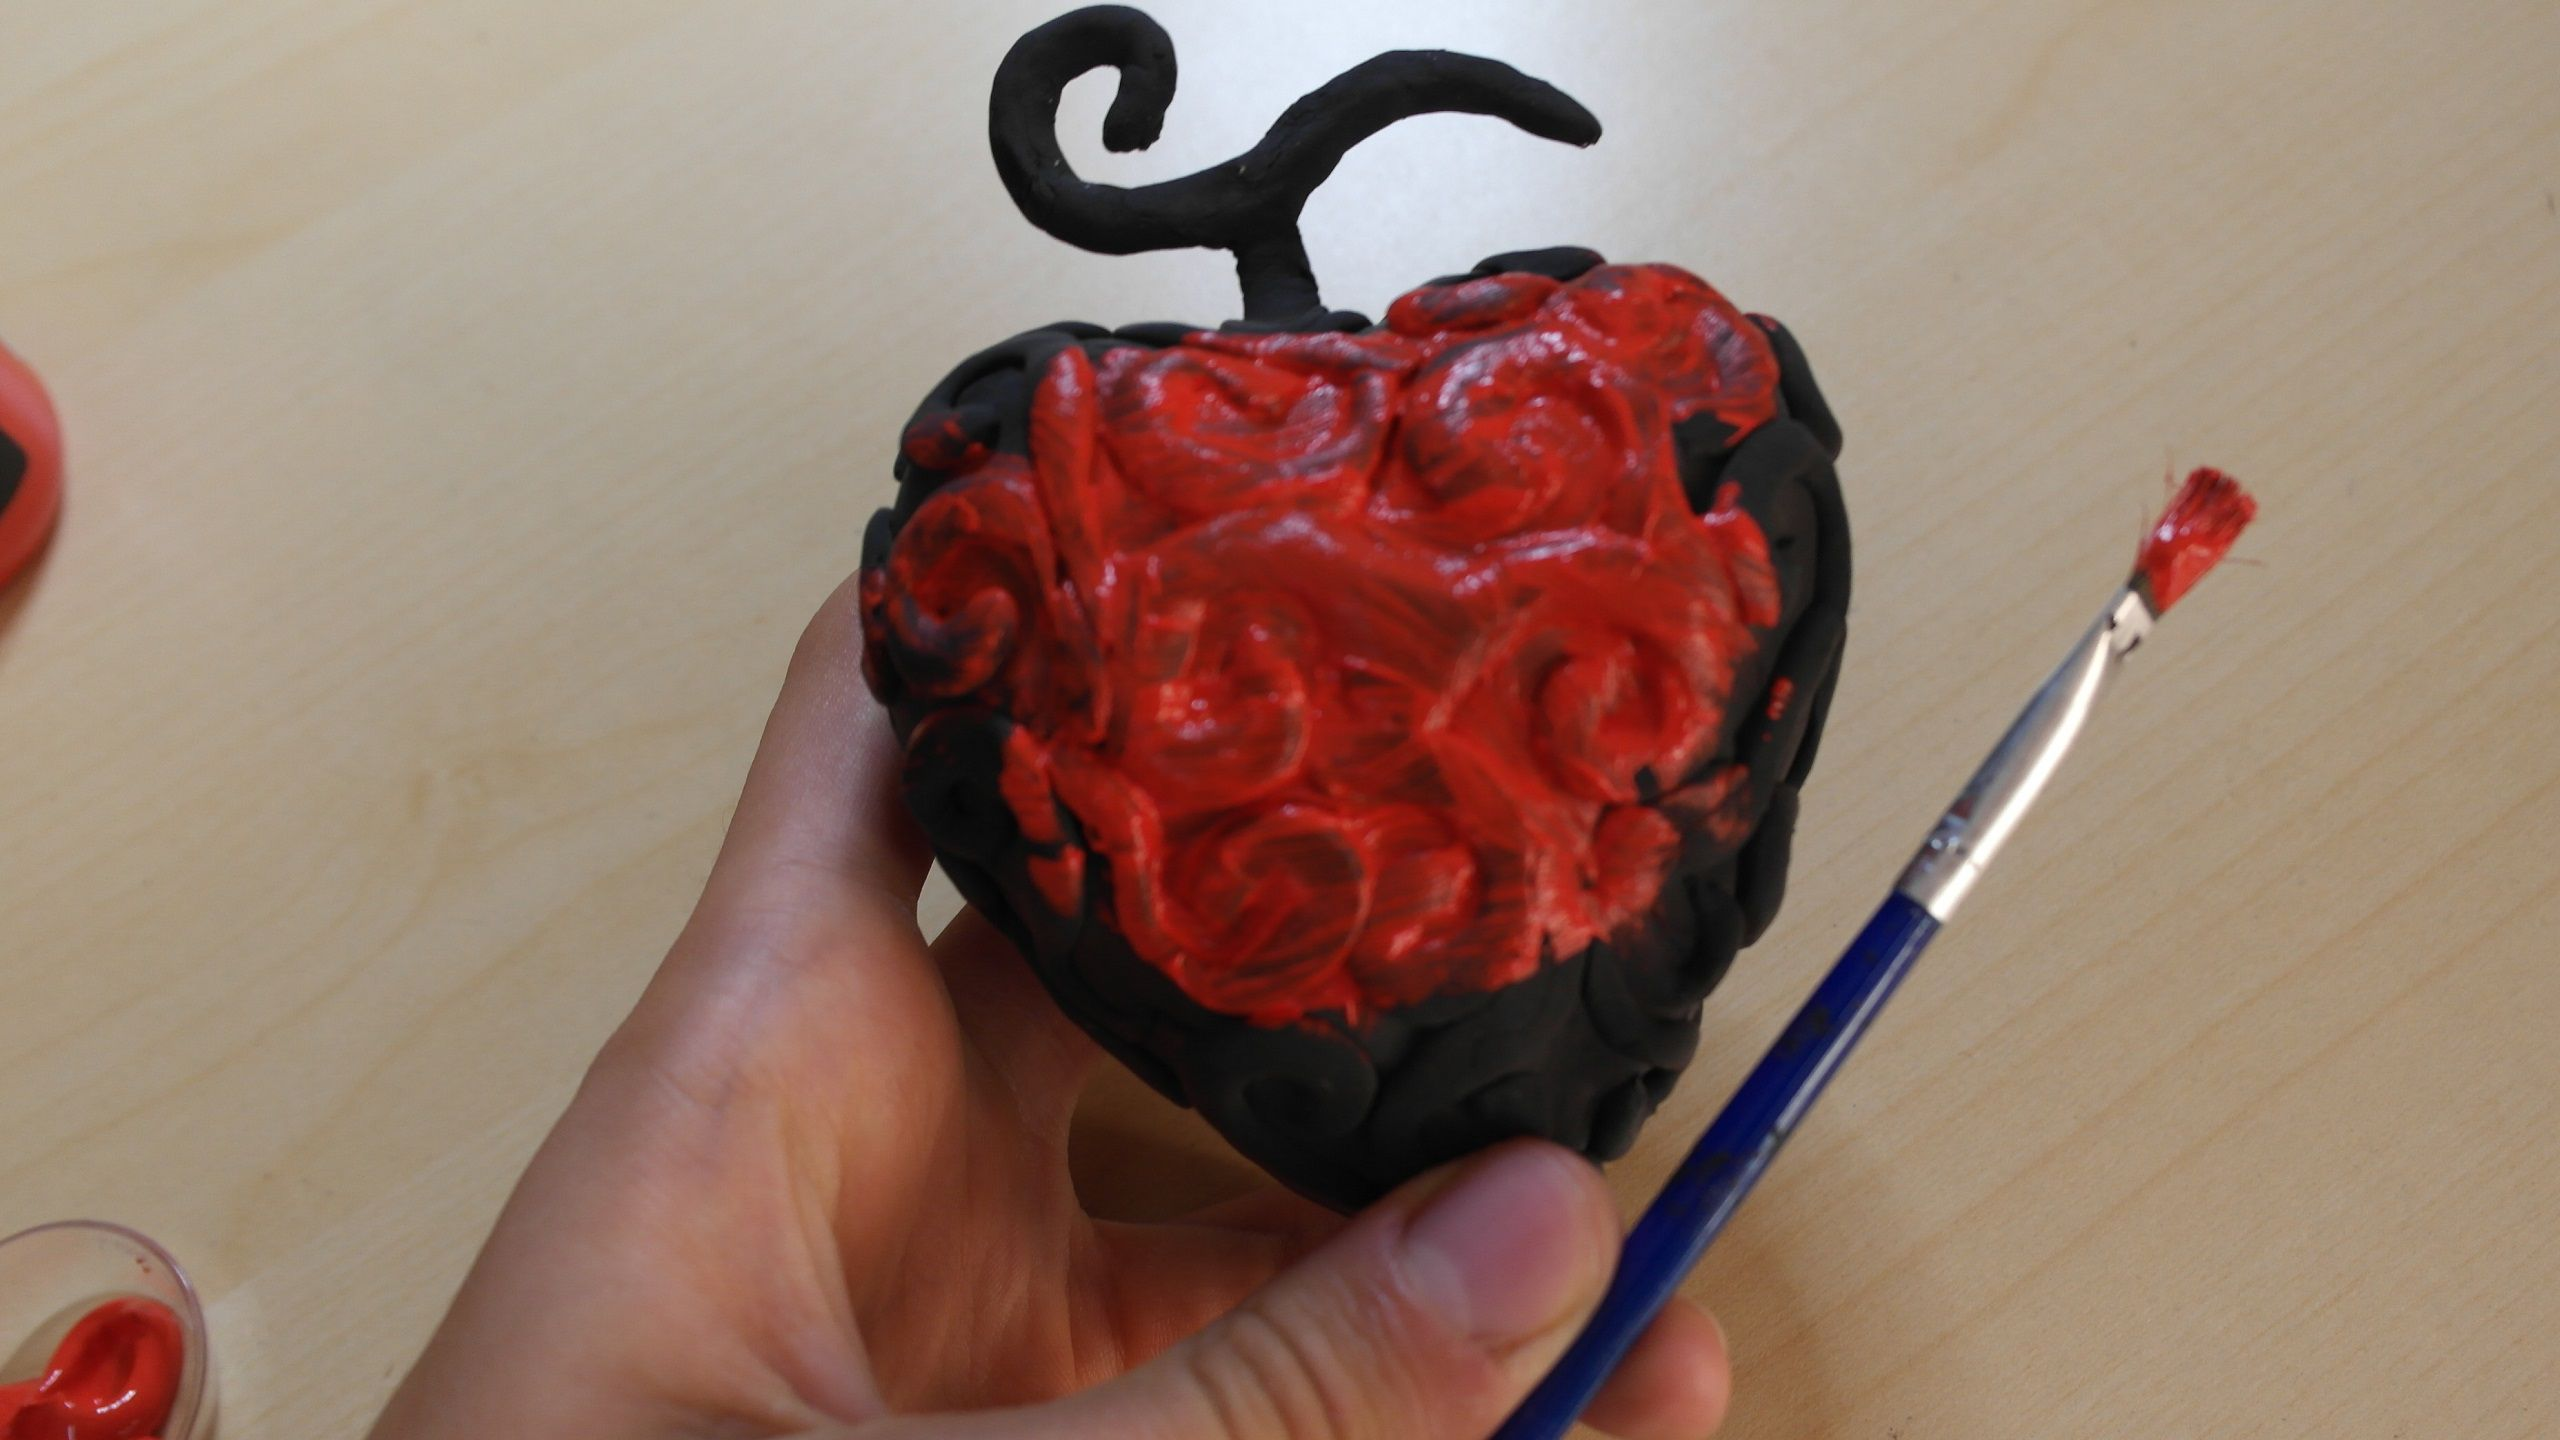 Howto Create the Heart Fire Devil Fruit One Piece Cosplay gadget - Frutti del Diavolo - Ope Ope no mi - Devil Fruits